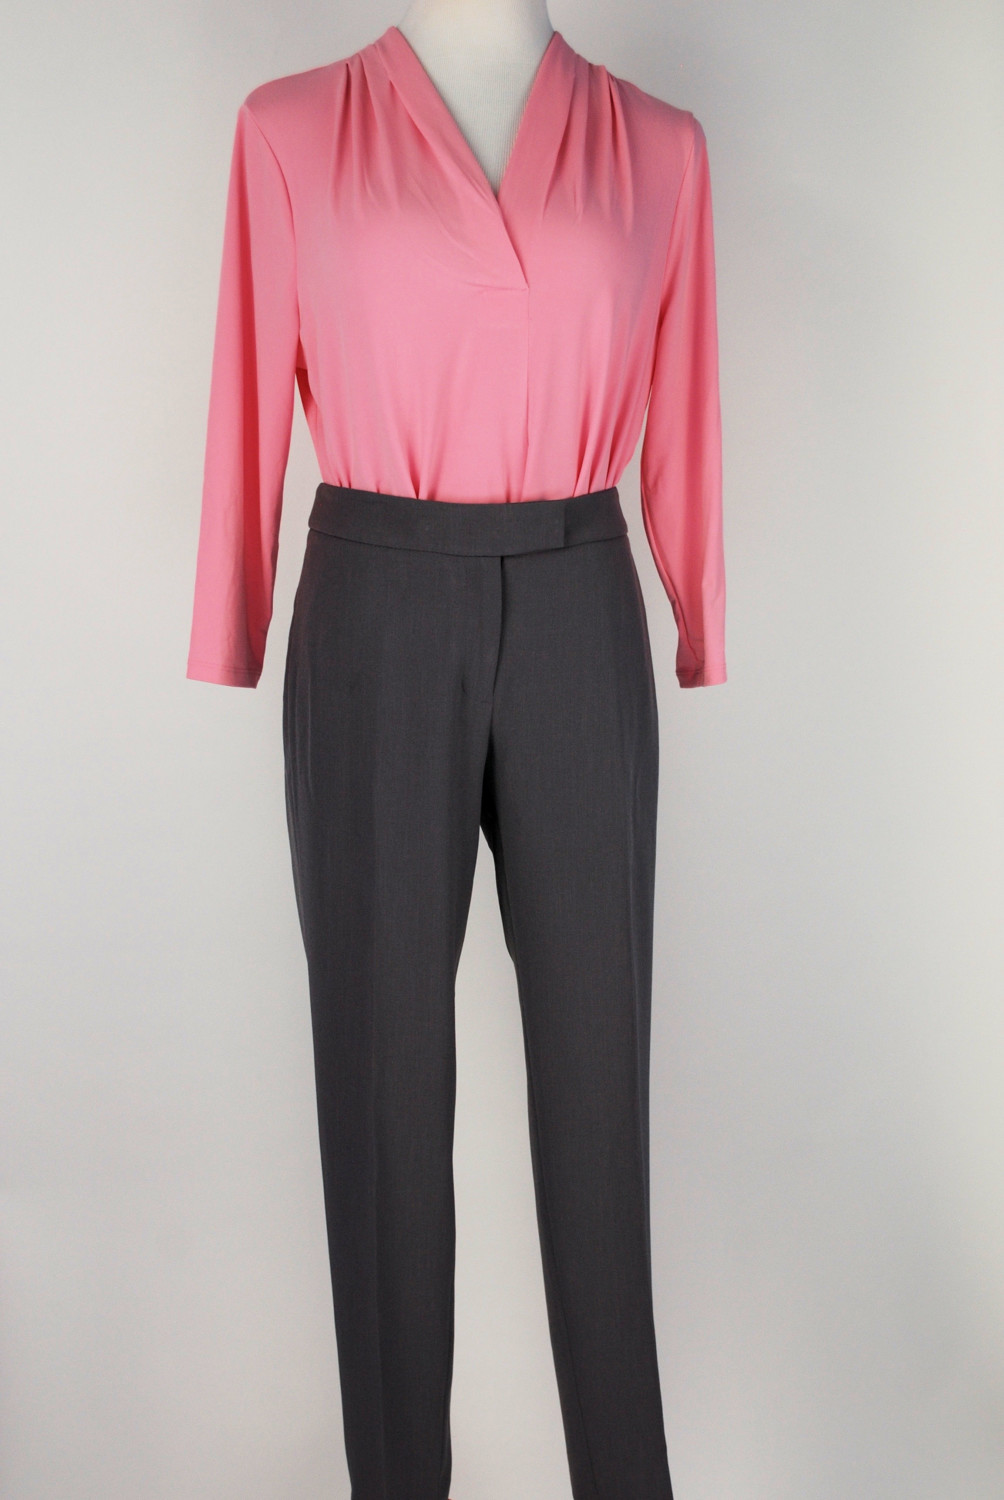 Anne Klein Pants – Original Retail: $89, CWS: $20